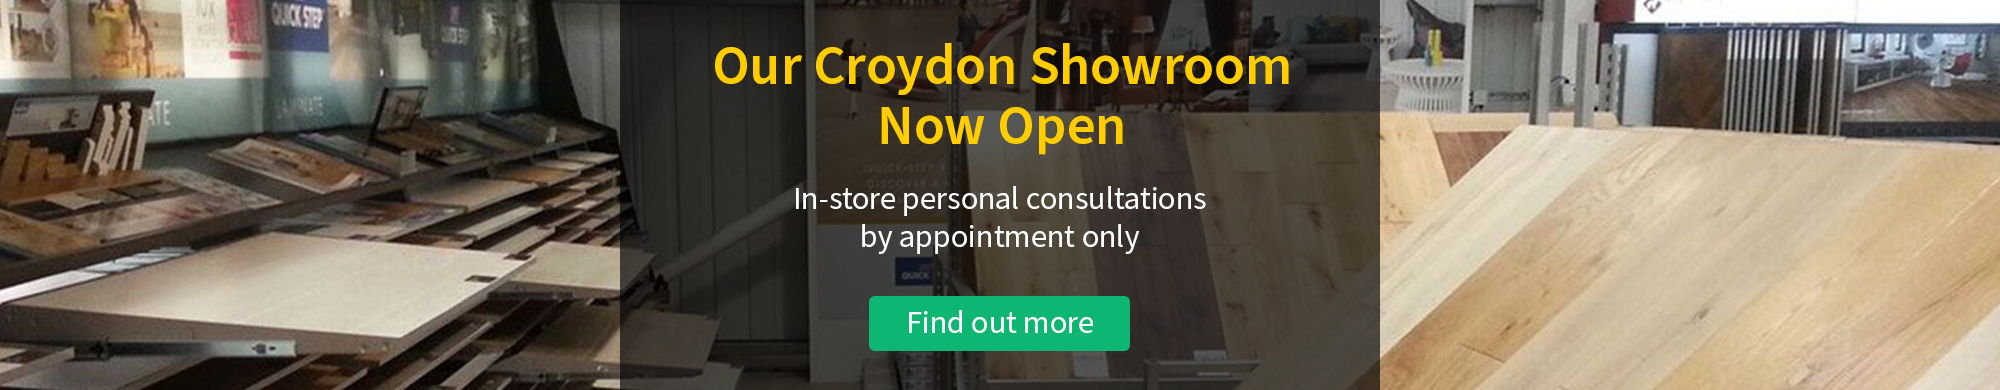 Croydon Showroom Open By Appointment Only